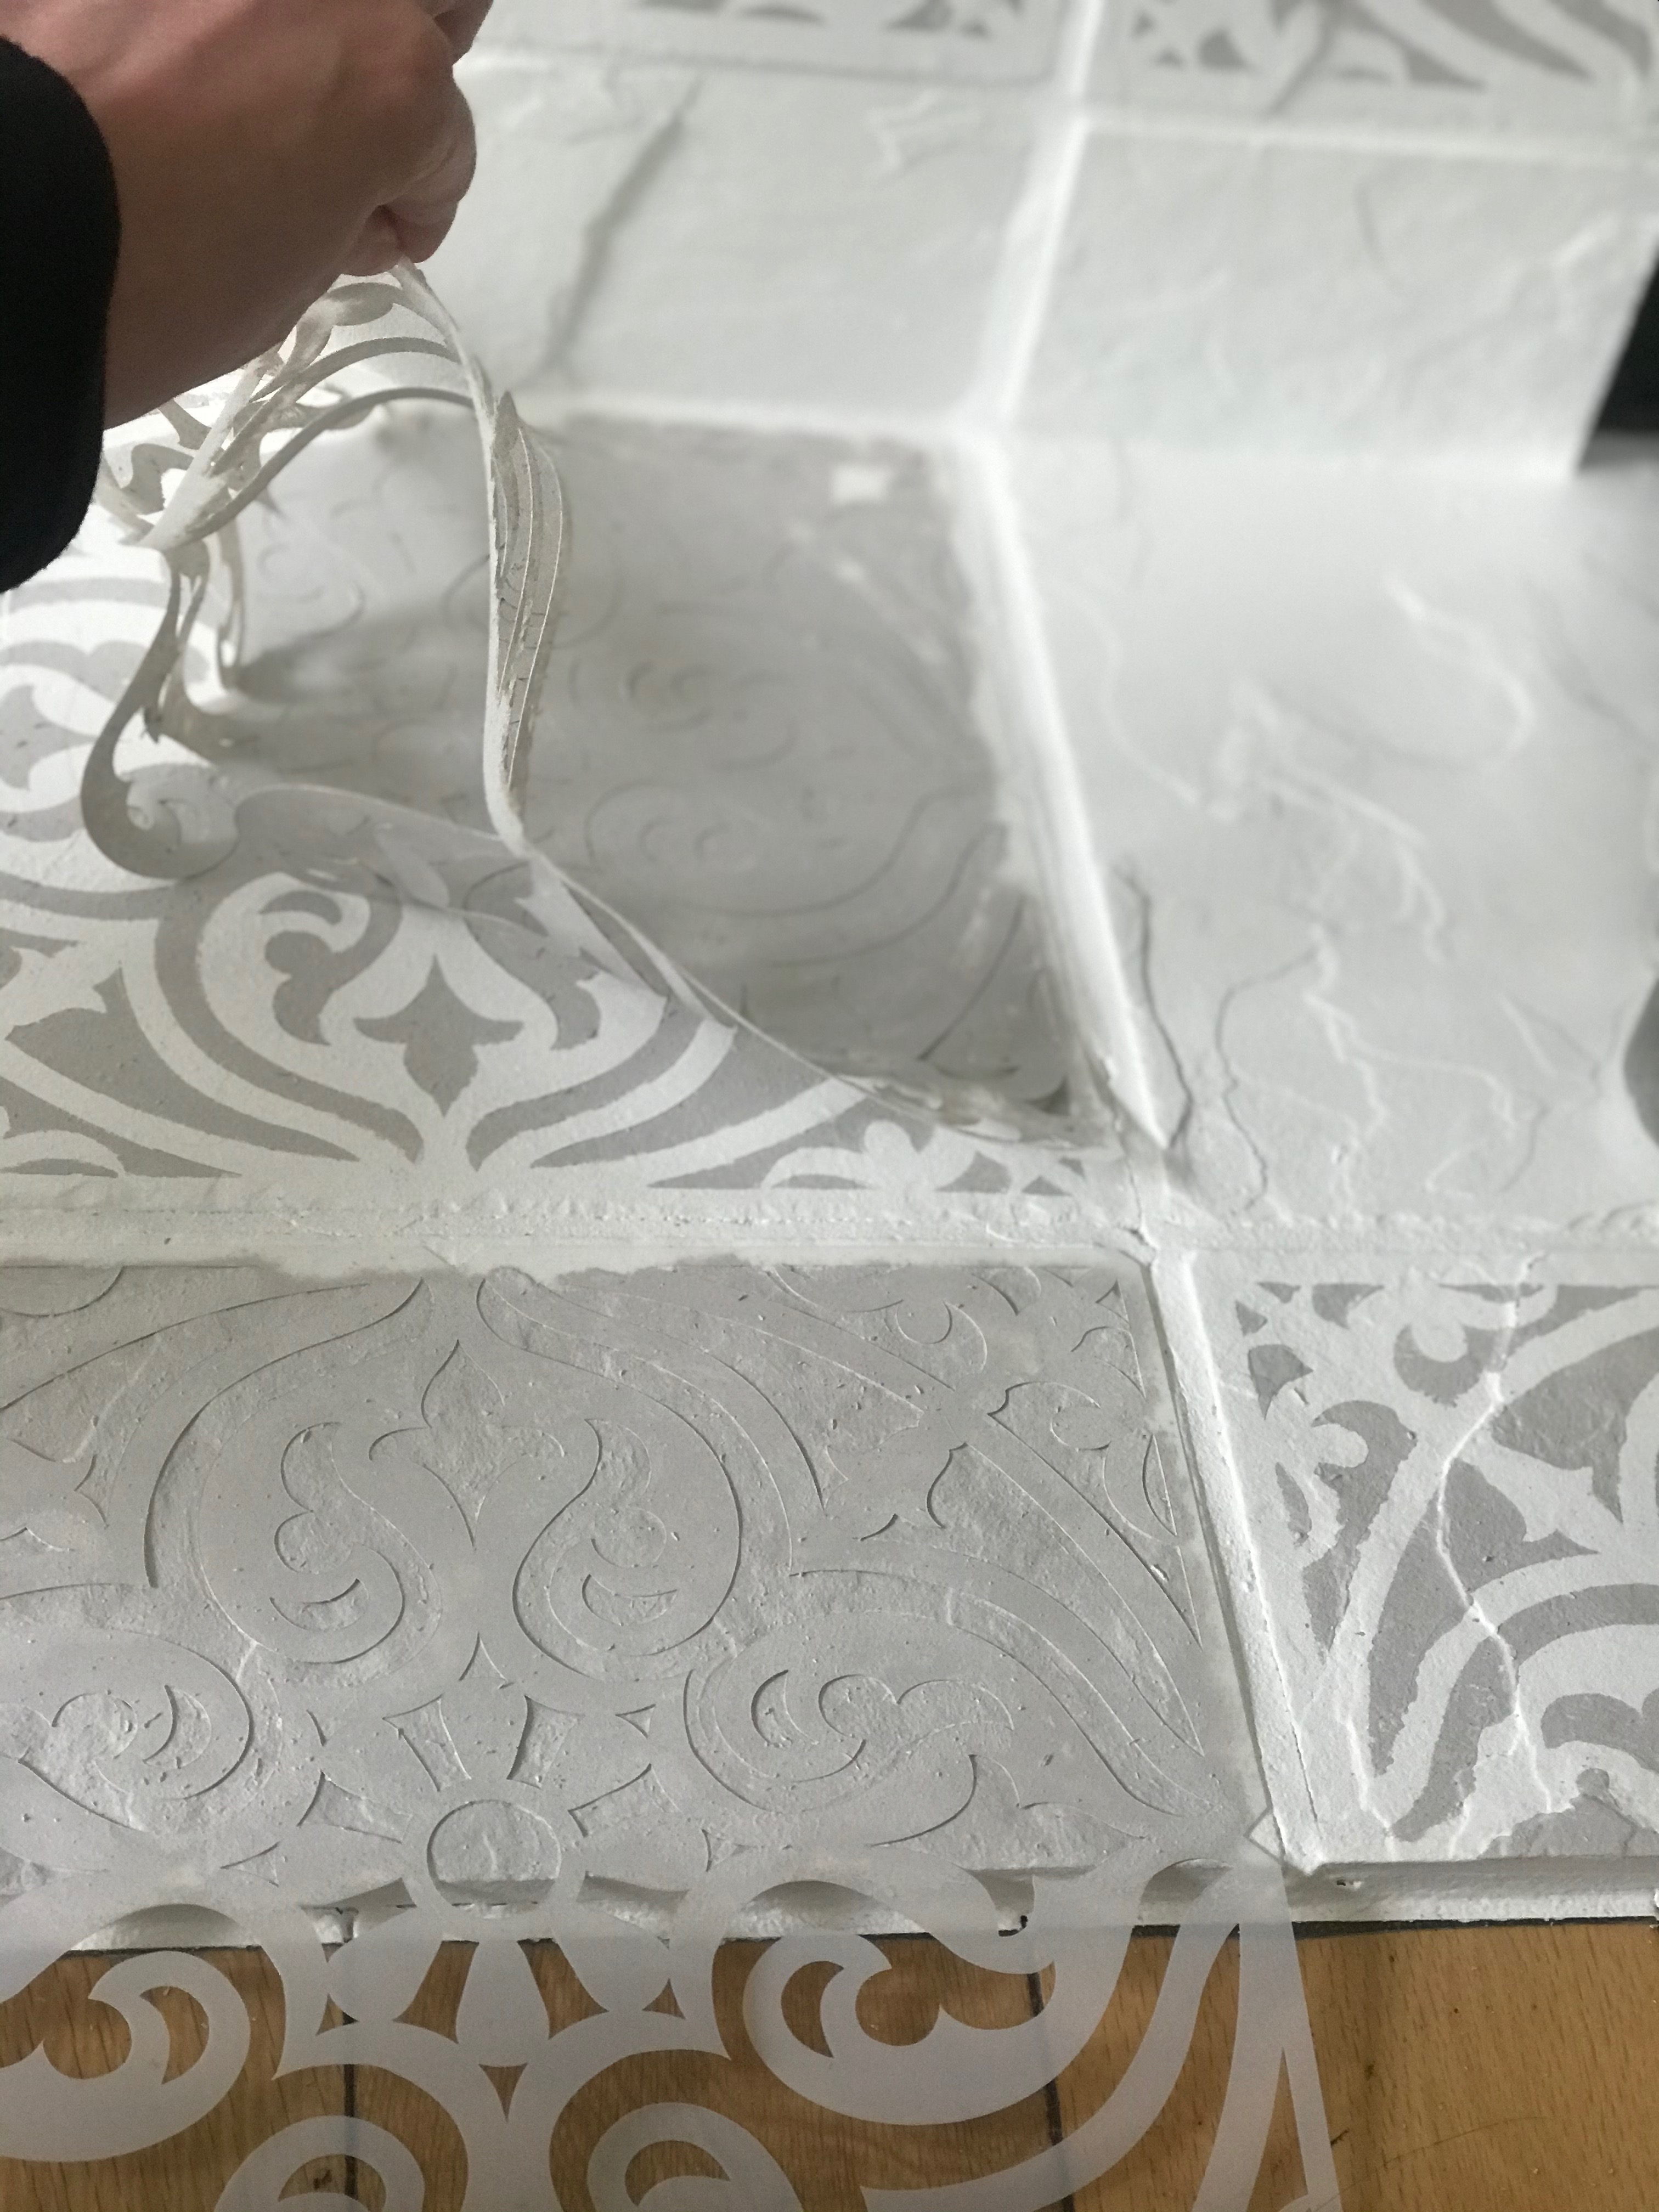 Removing a DIY stencil from a fireplace mantel makeover